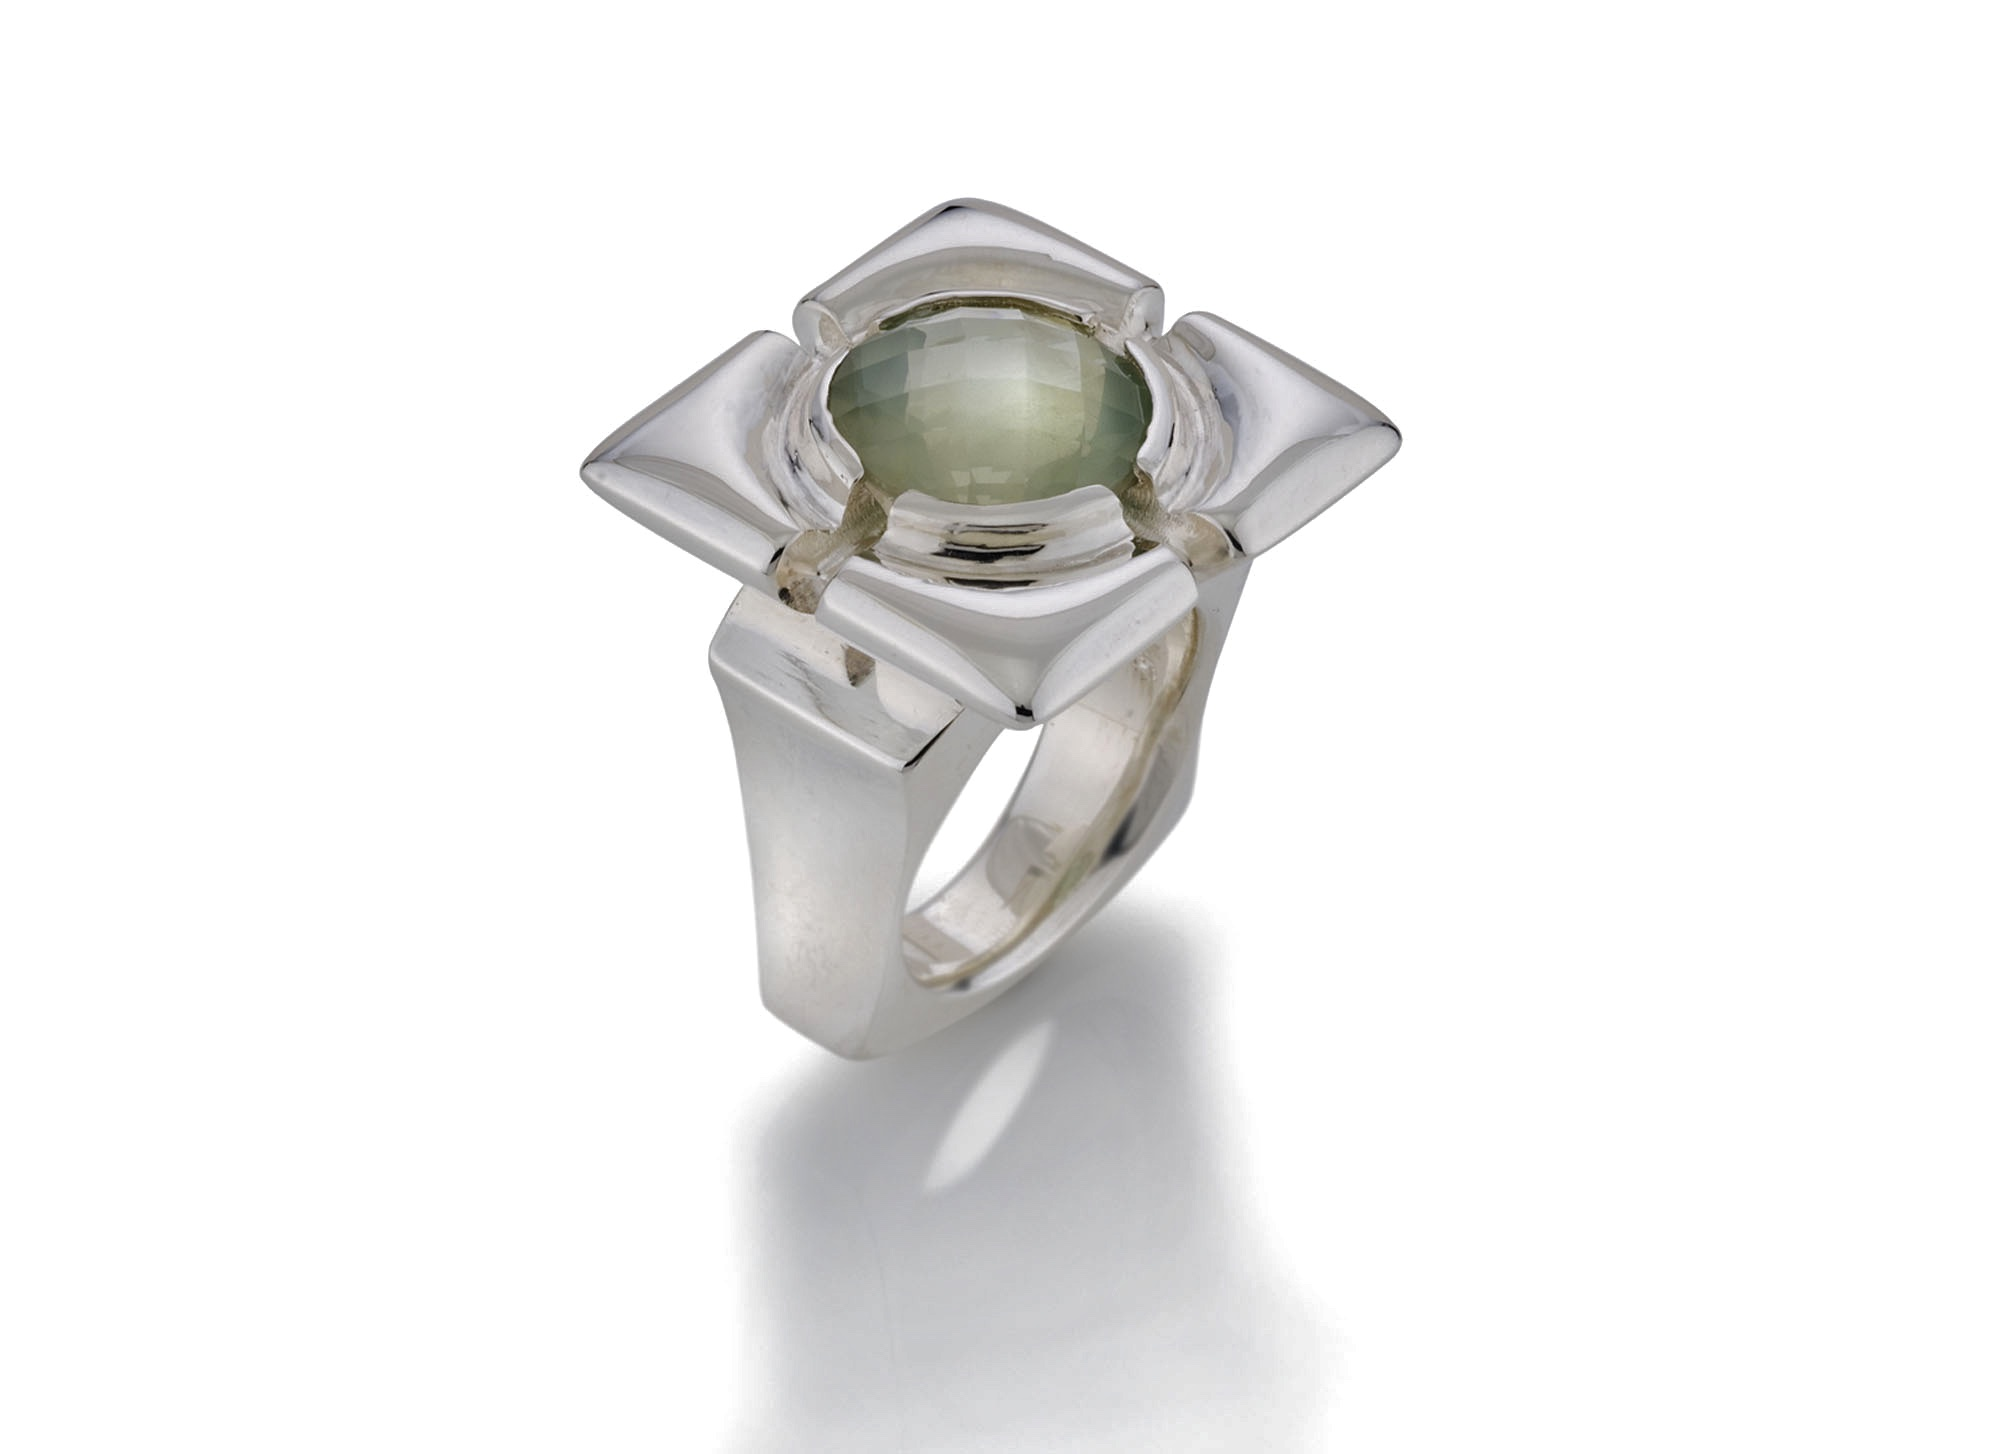 Shown here is a checker board cut moonstone cabochon, set into a sterling silver frame ring. A one of a kind design by Kathleen Lynagh Designs to highlight the gemstone's fine qualities.